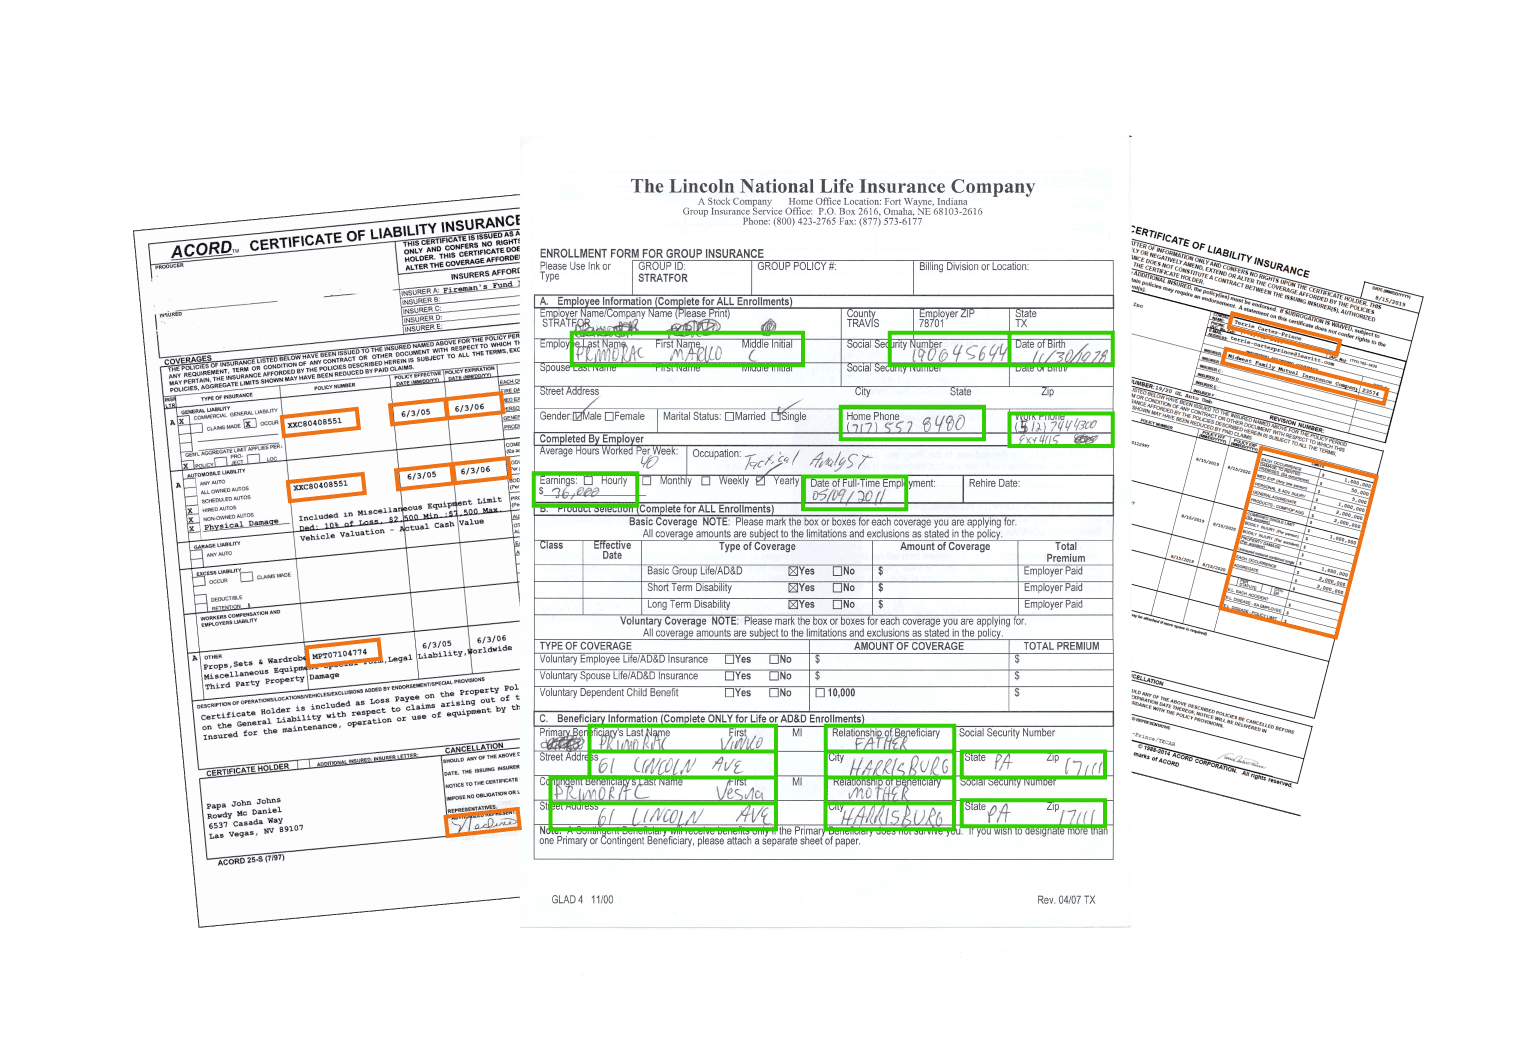 Faster insurance claims processing - classify and extract data from insurance claims